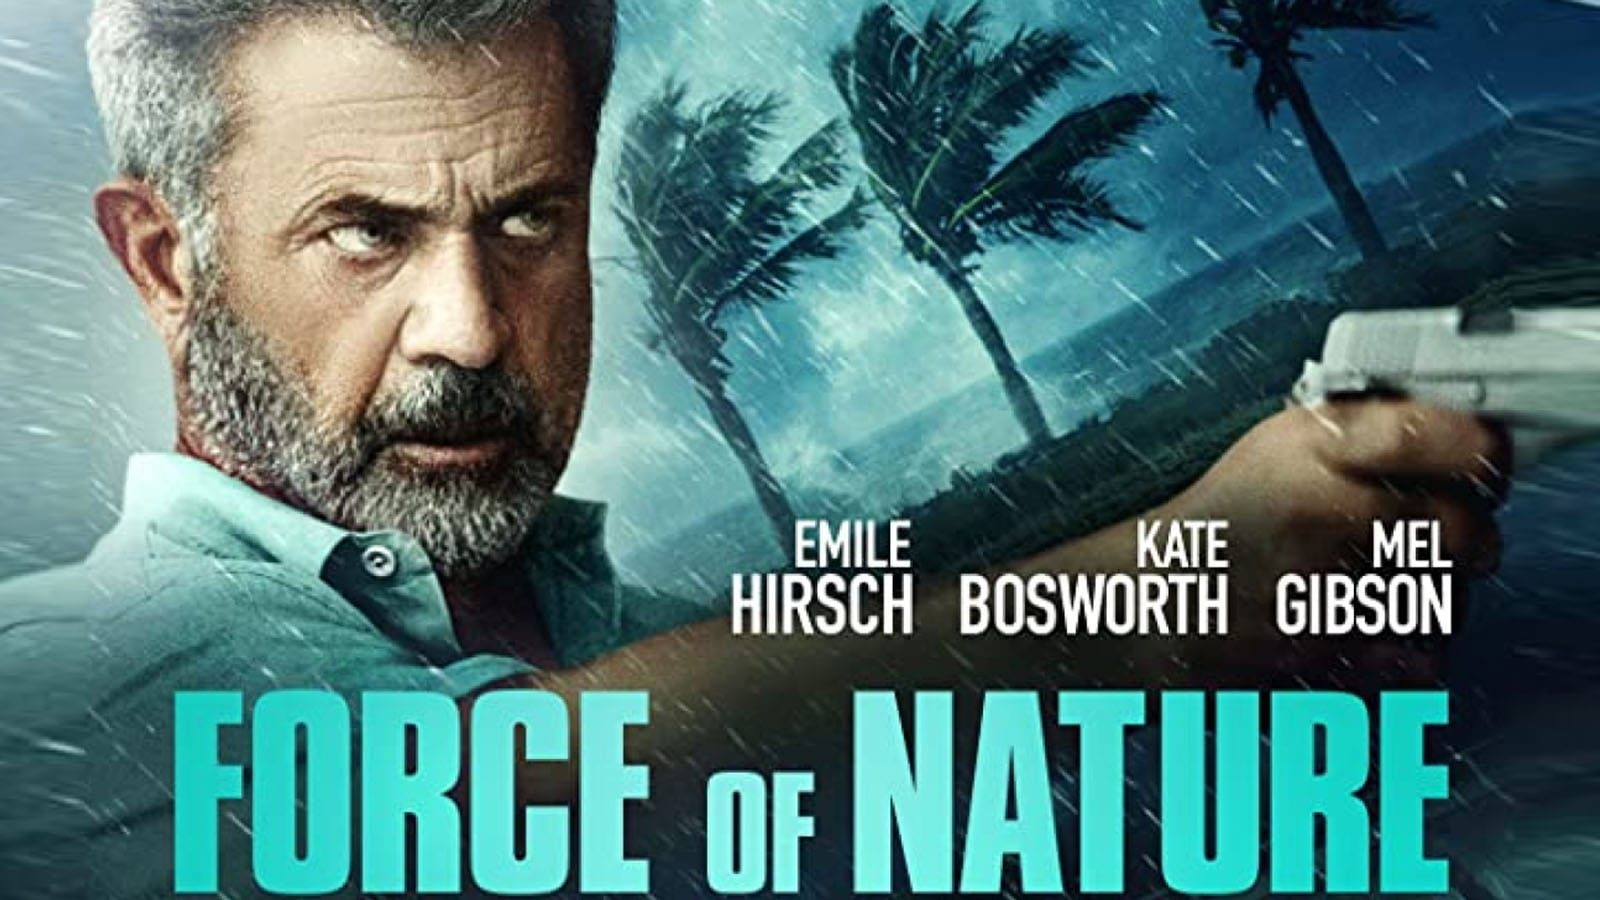 Mel Gibson's racist Force Of Nature glorifies police brutality